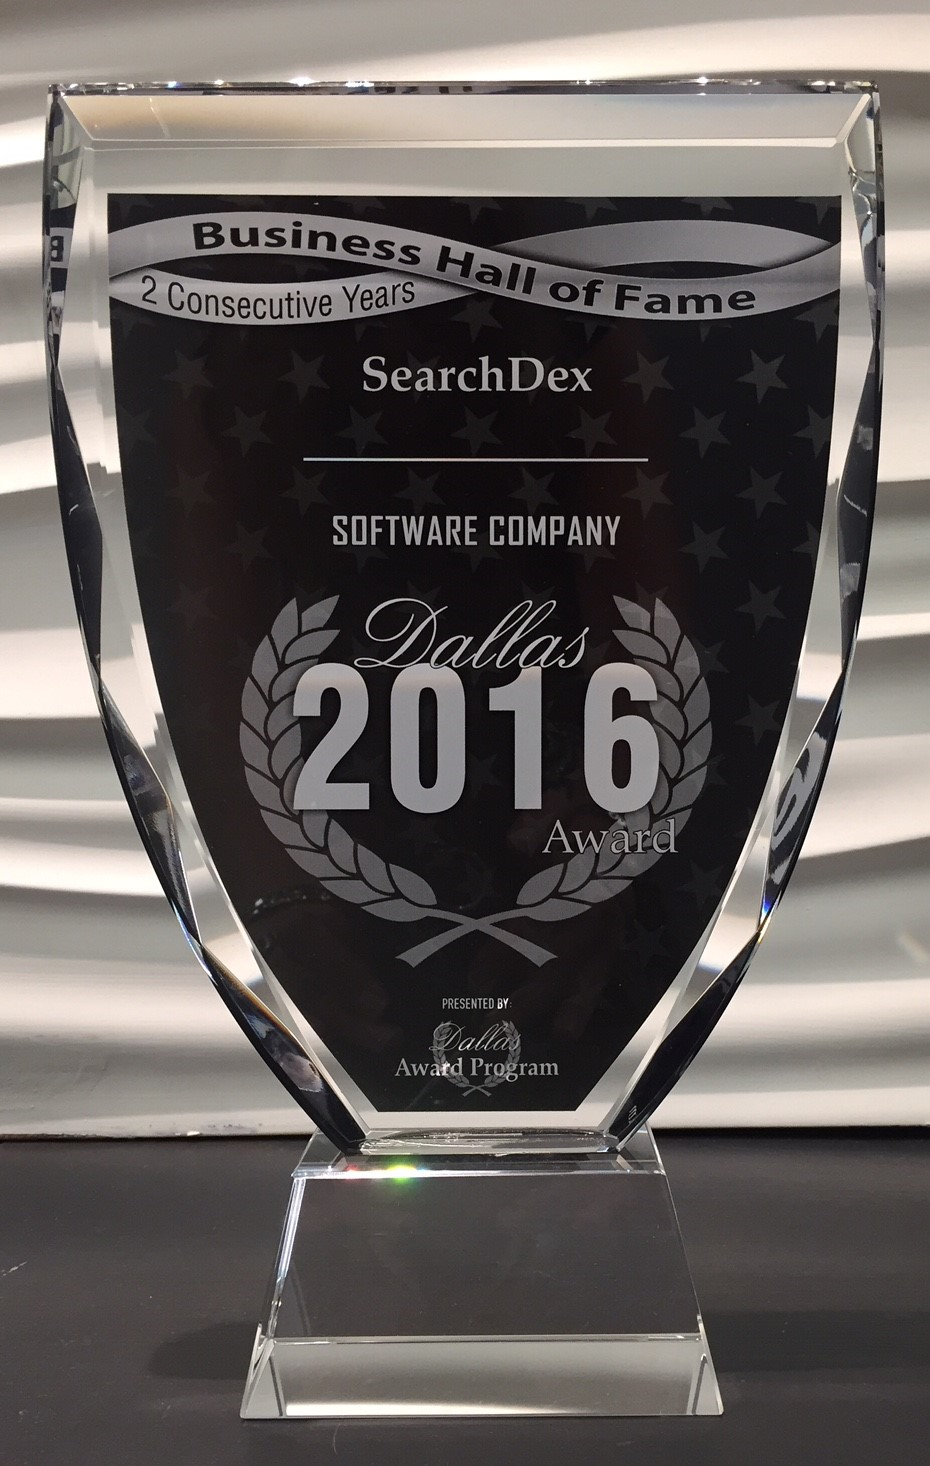 SearchDex Receives 2016 Dallas Award